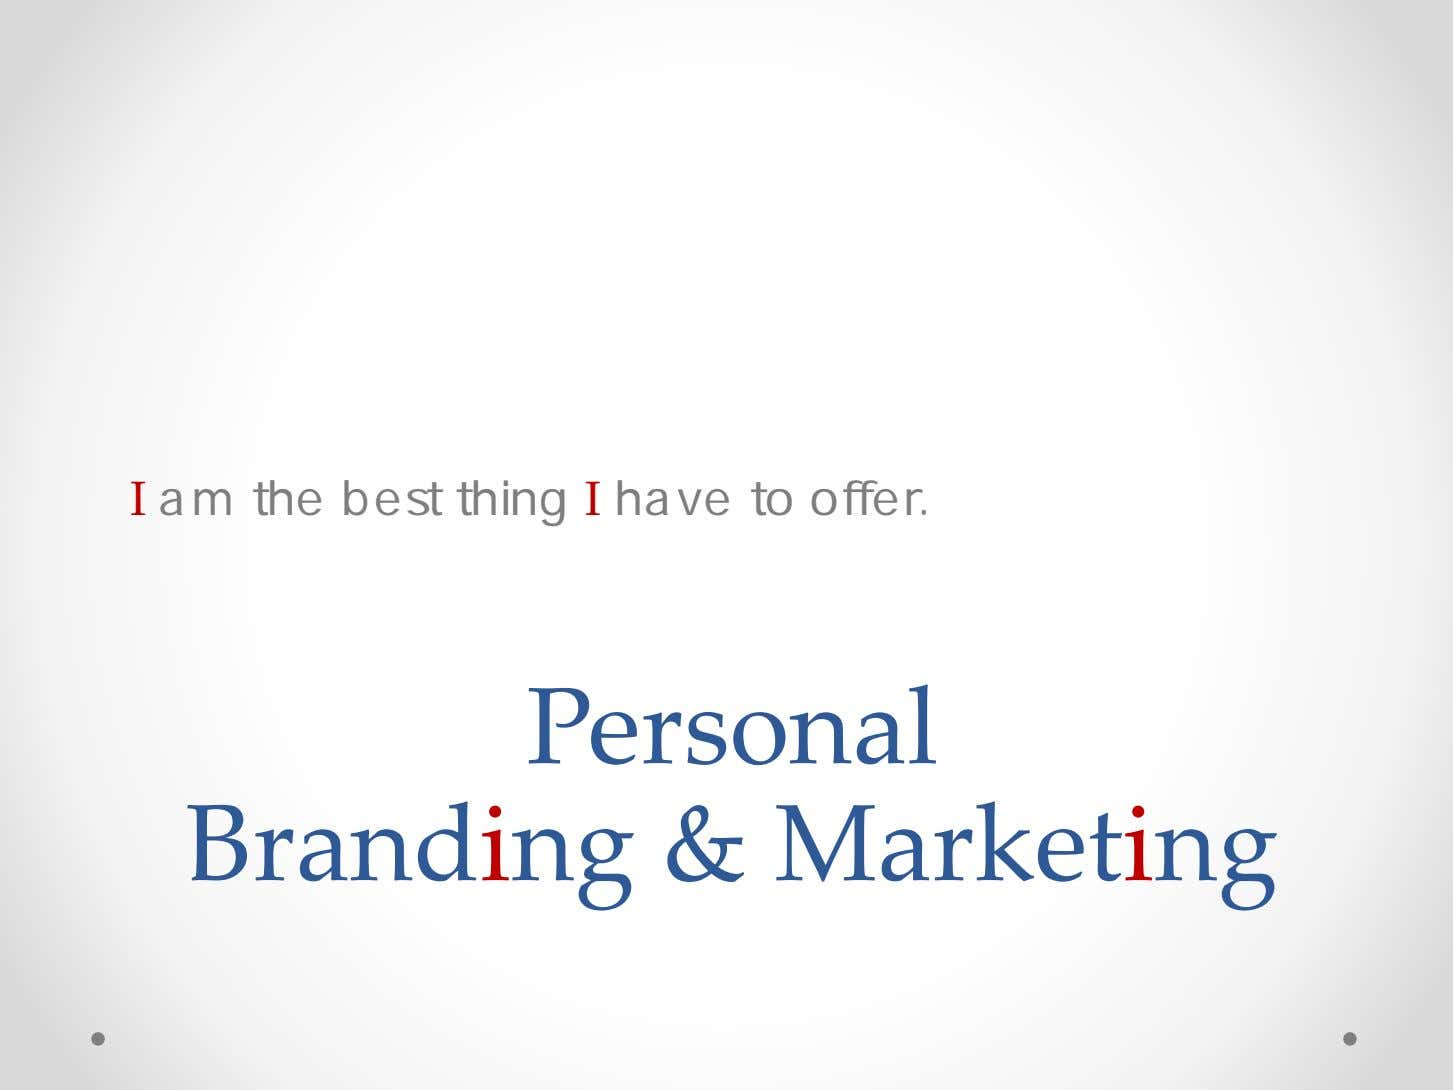 I am the best thing I have to offer. Personal Brandi ng & Market i